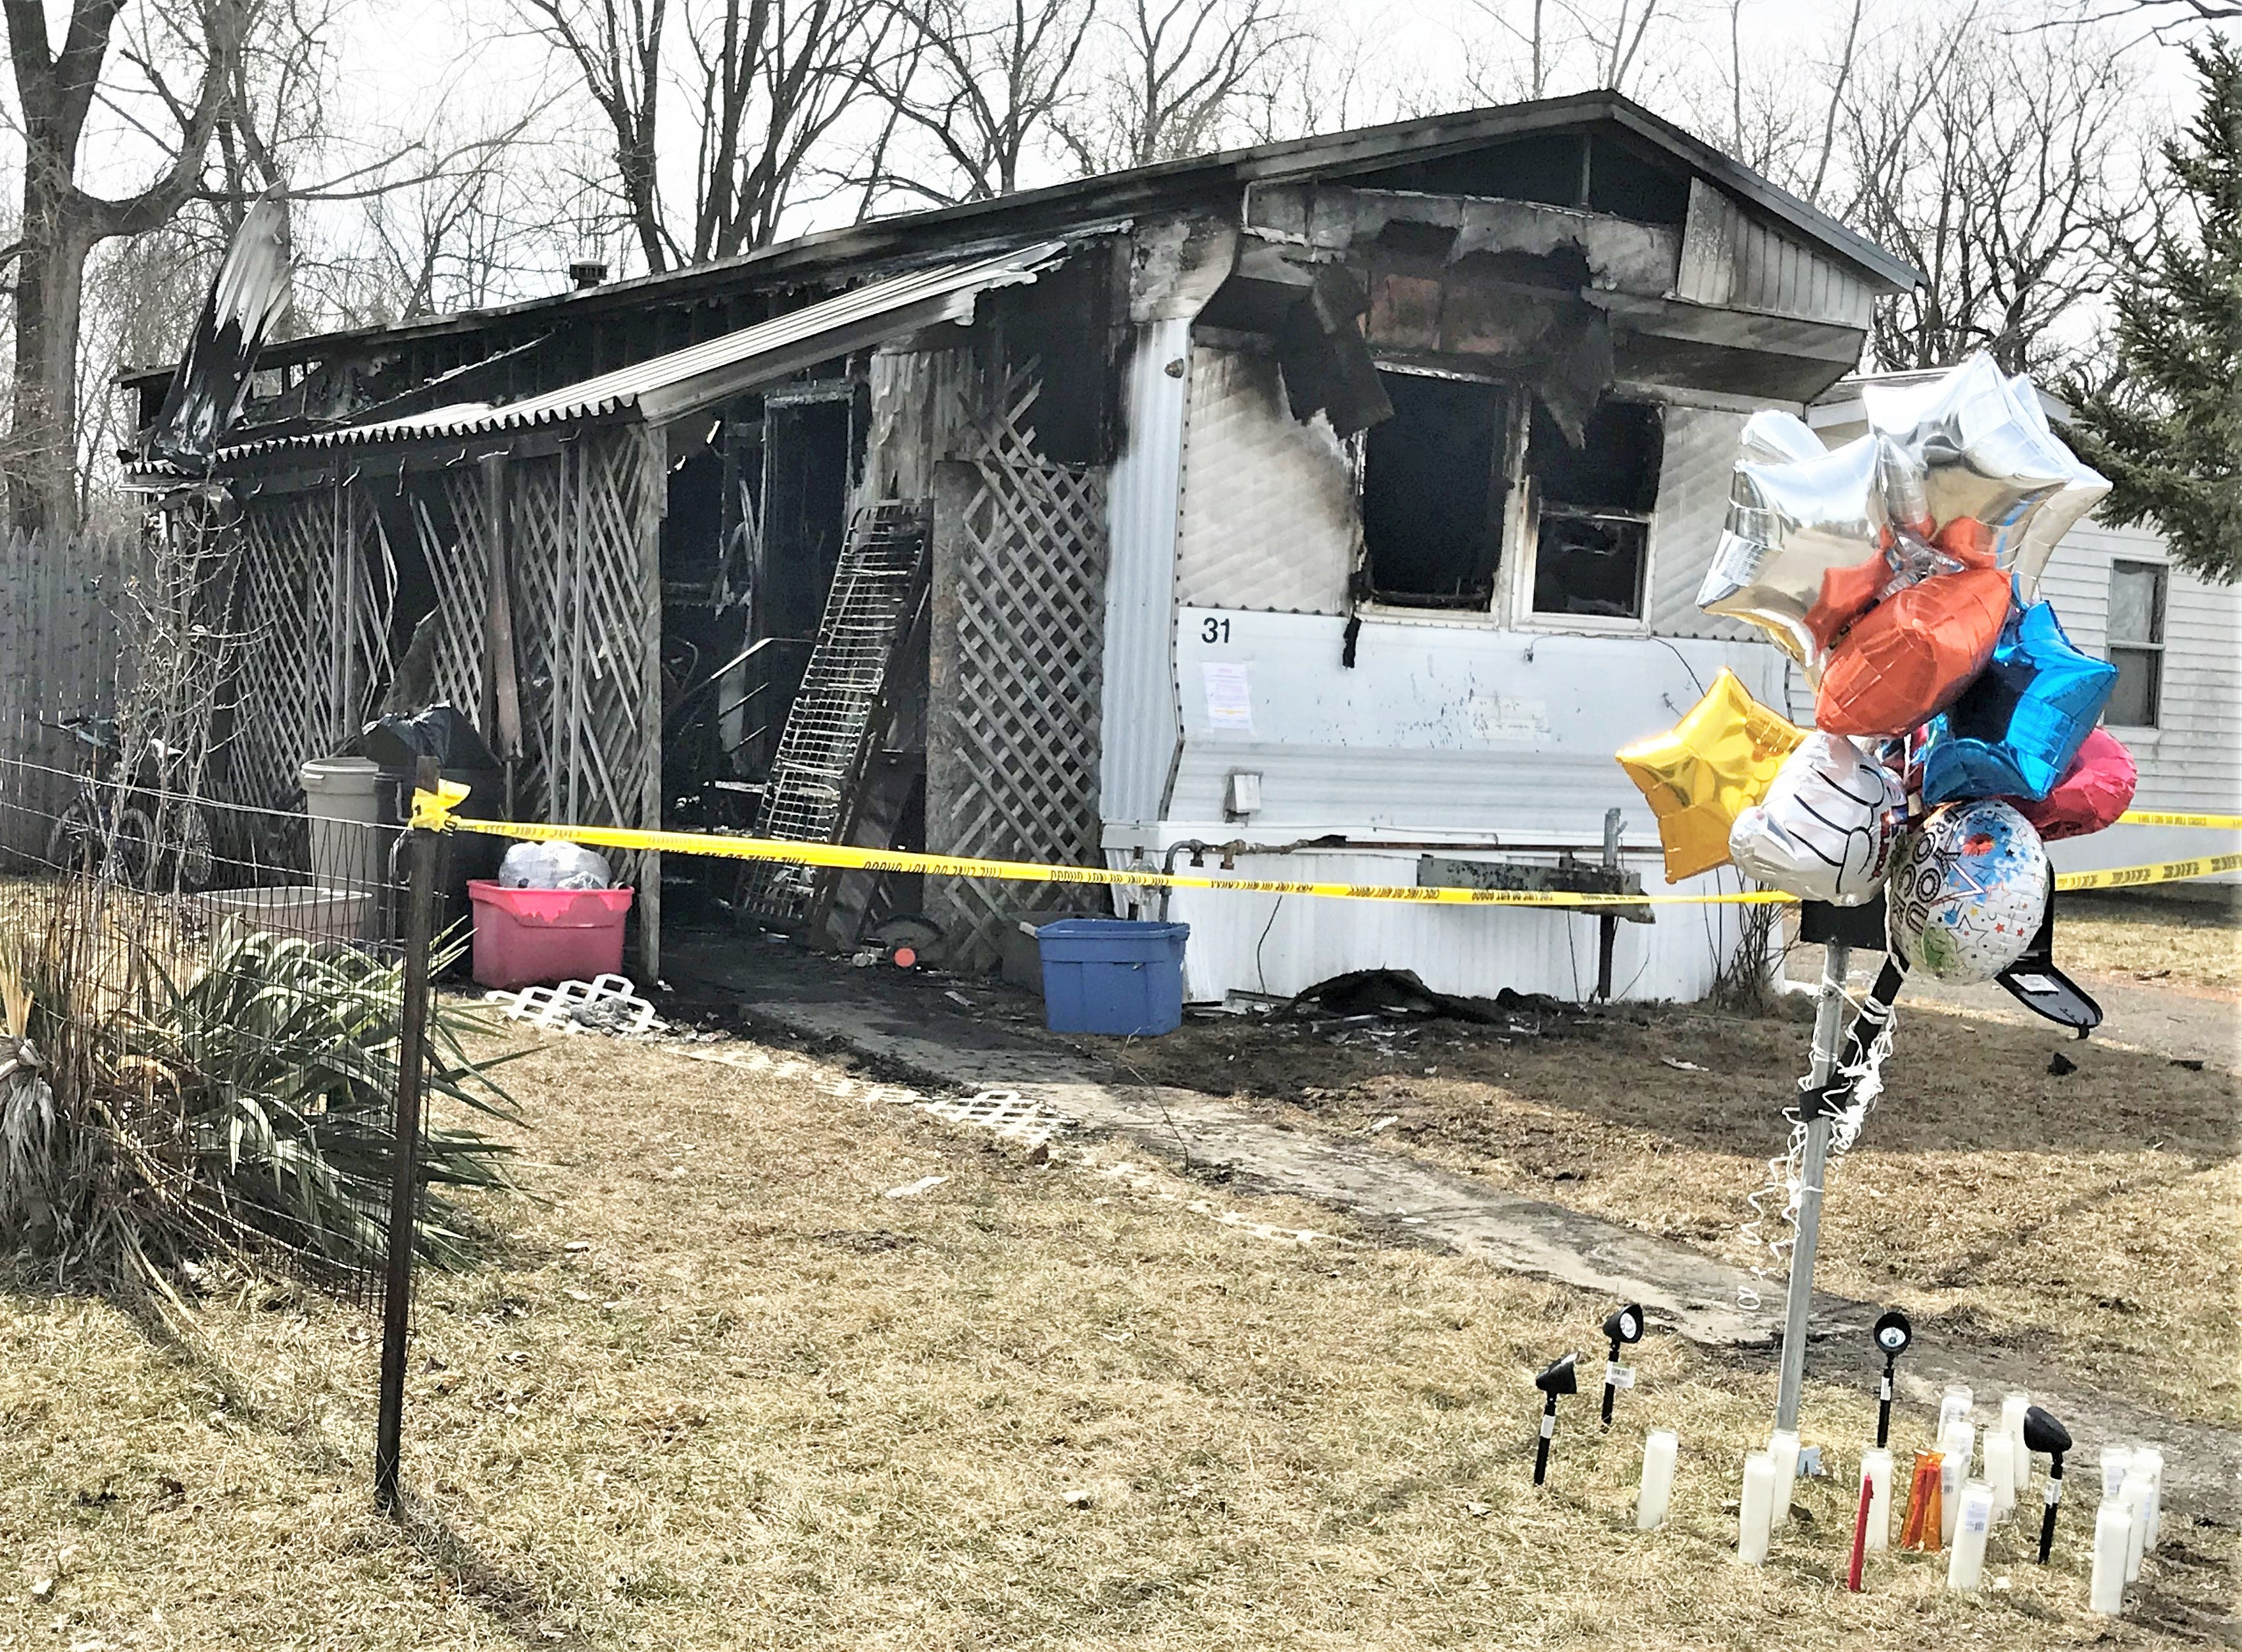 Investigators determine cause of fatal Horseheads trailer fire